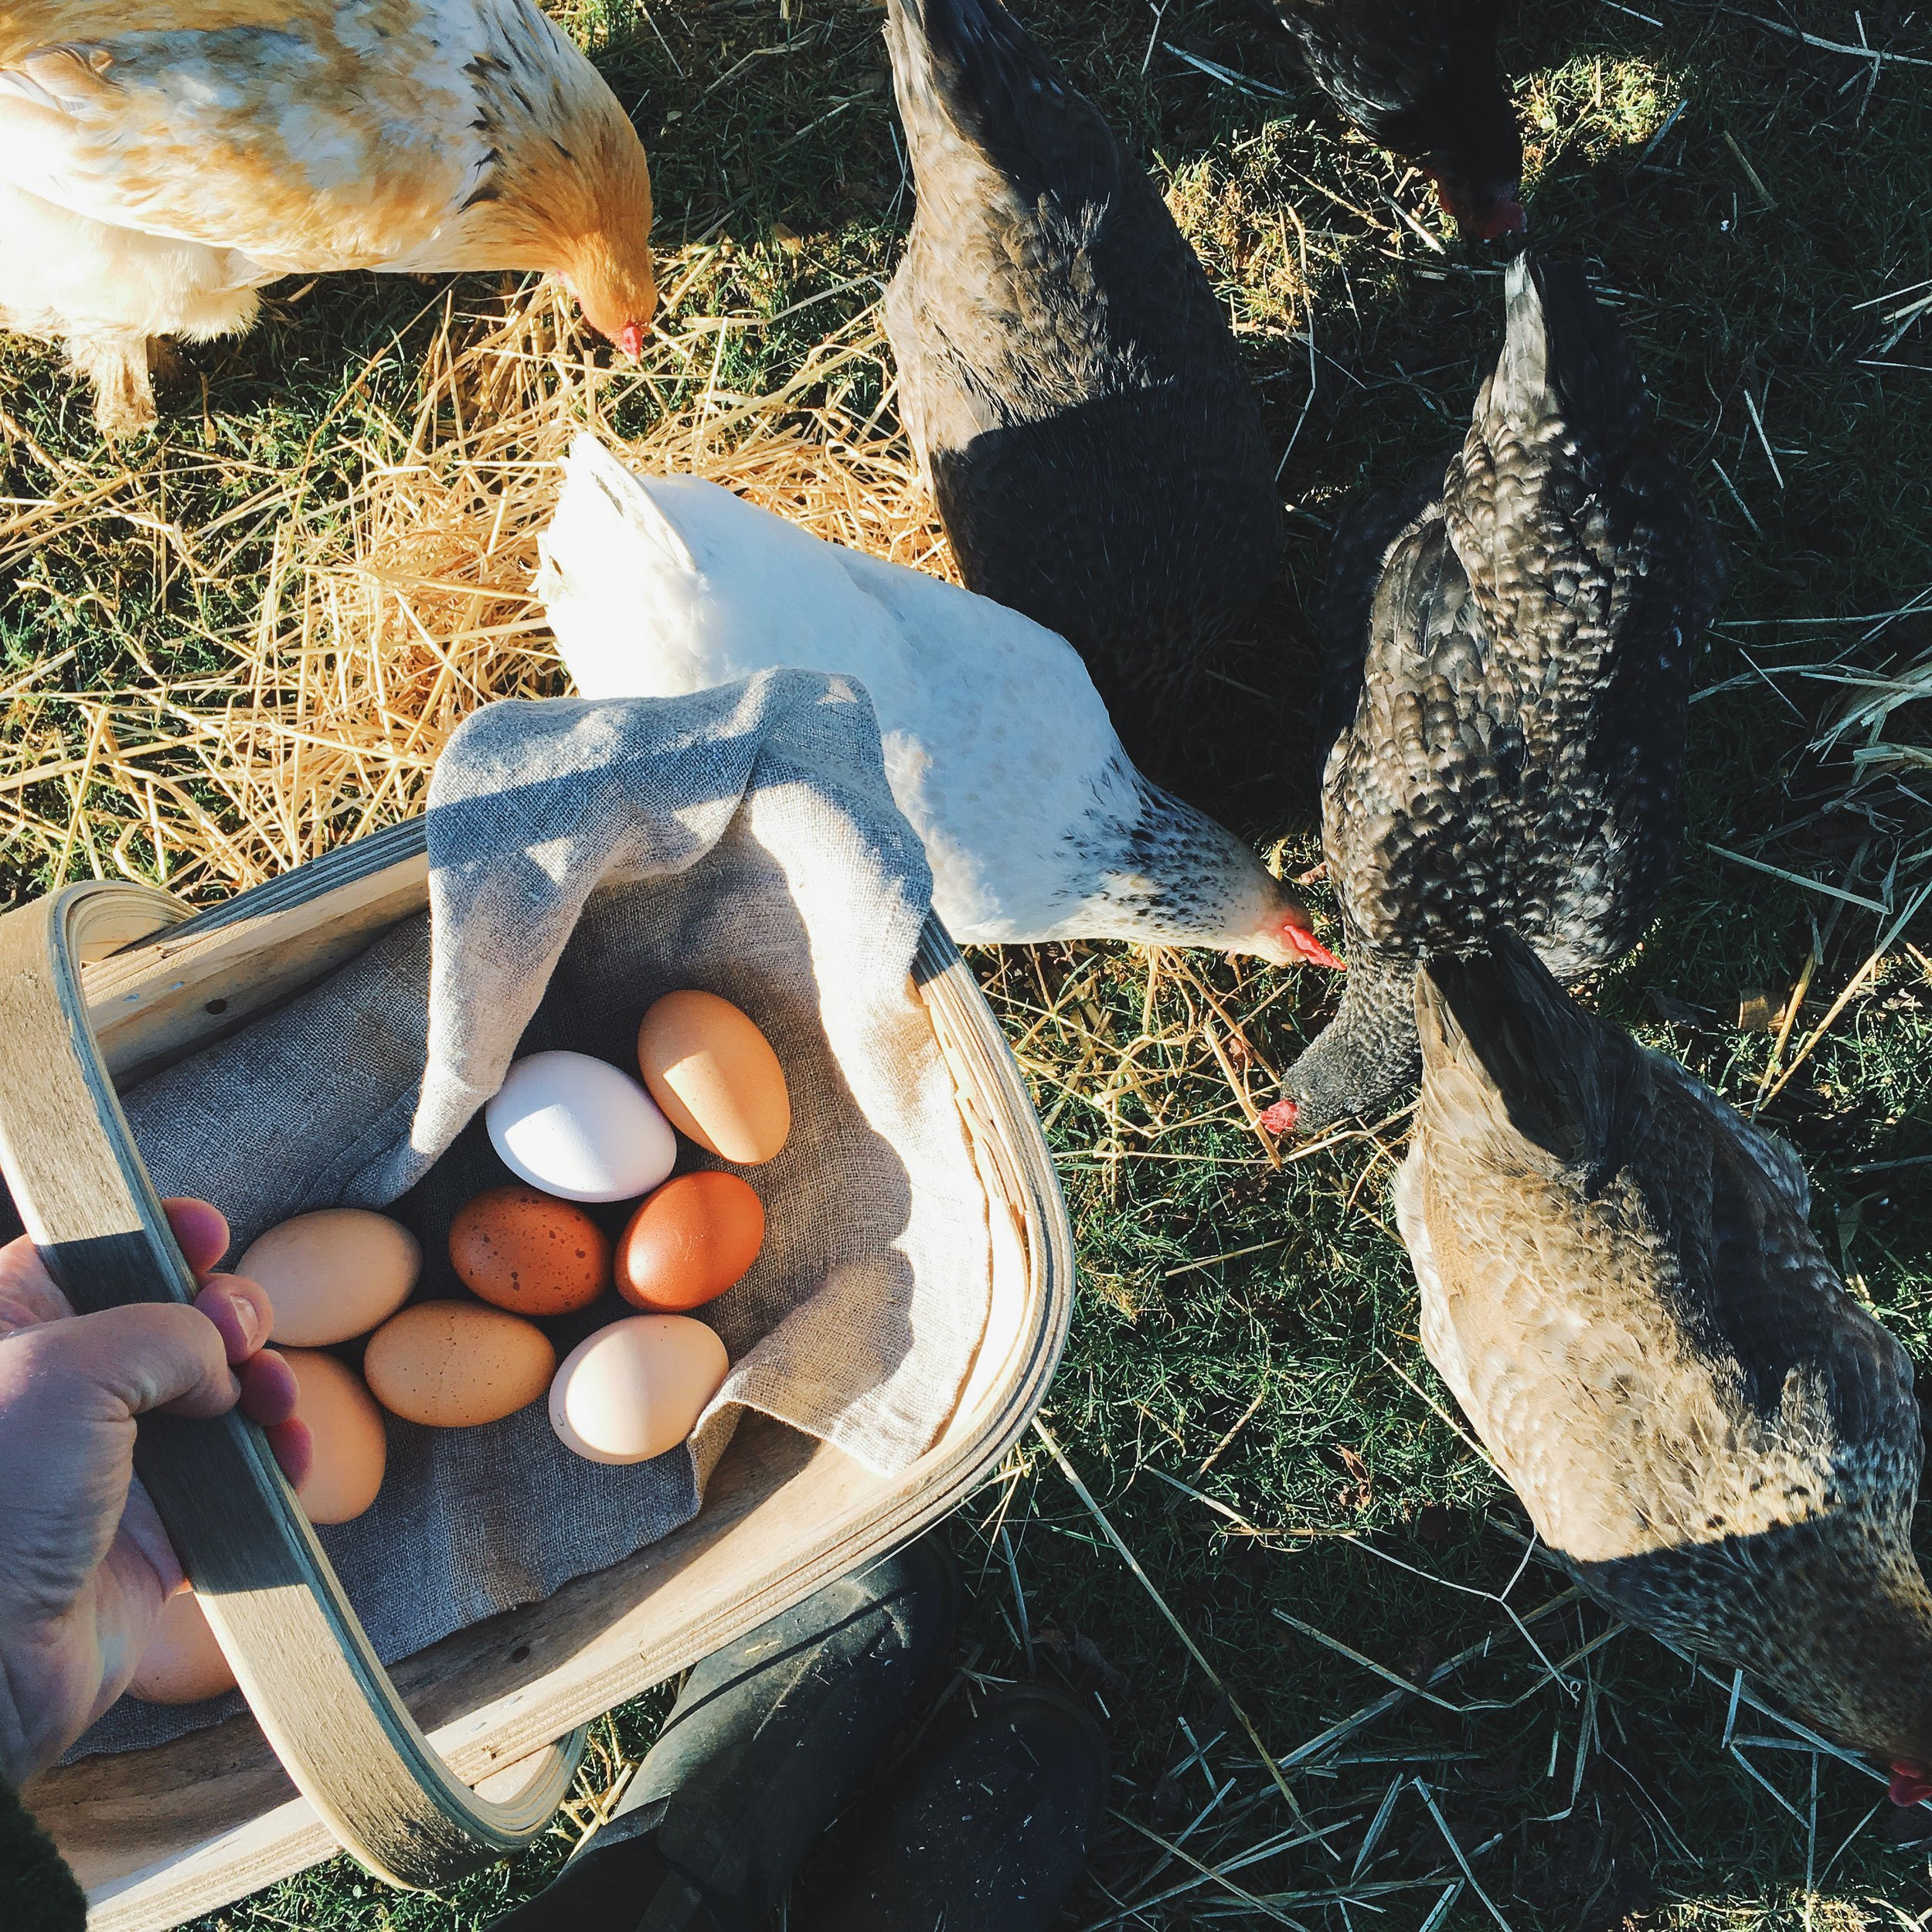 a beginners guide to keeping chickens abookishbaker.com